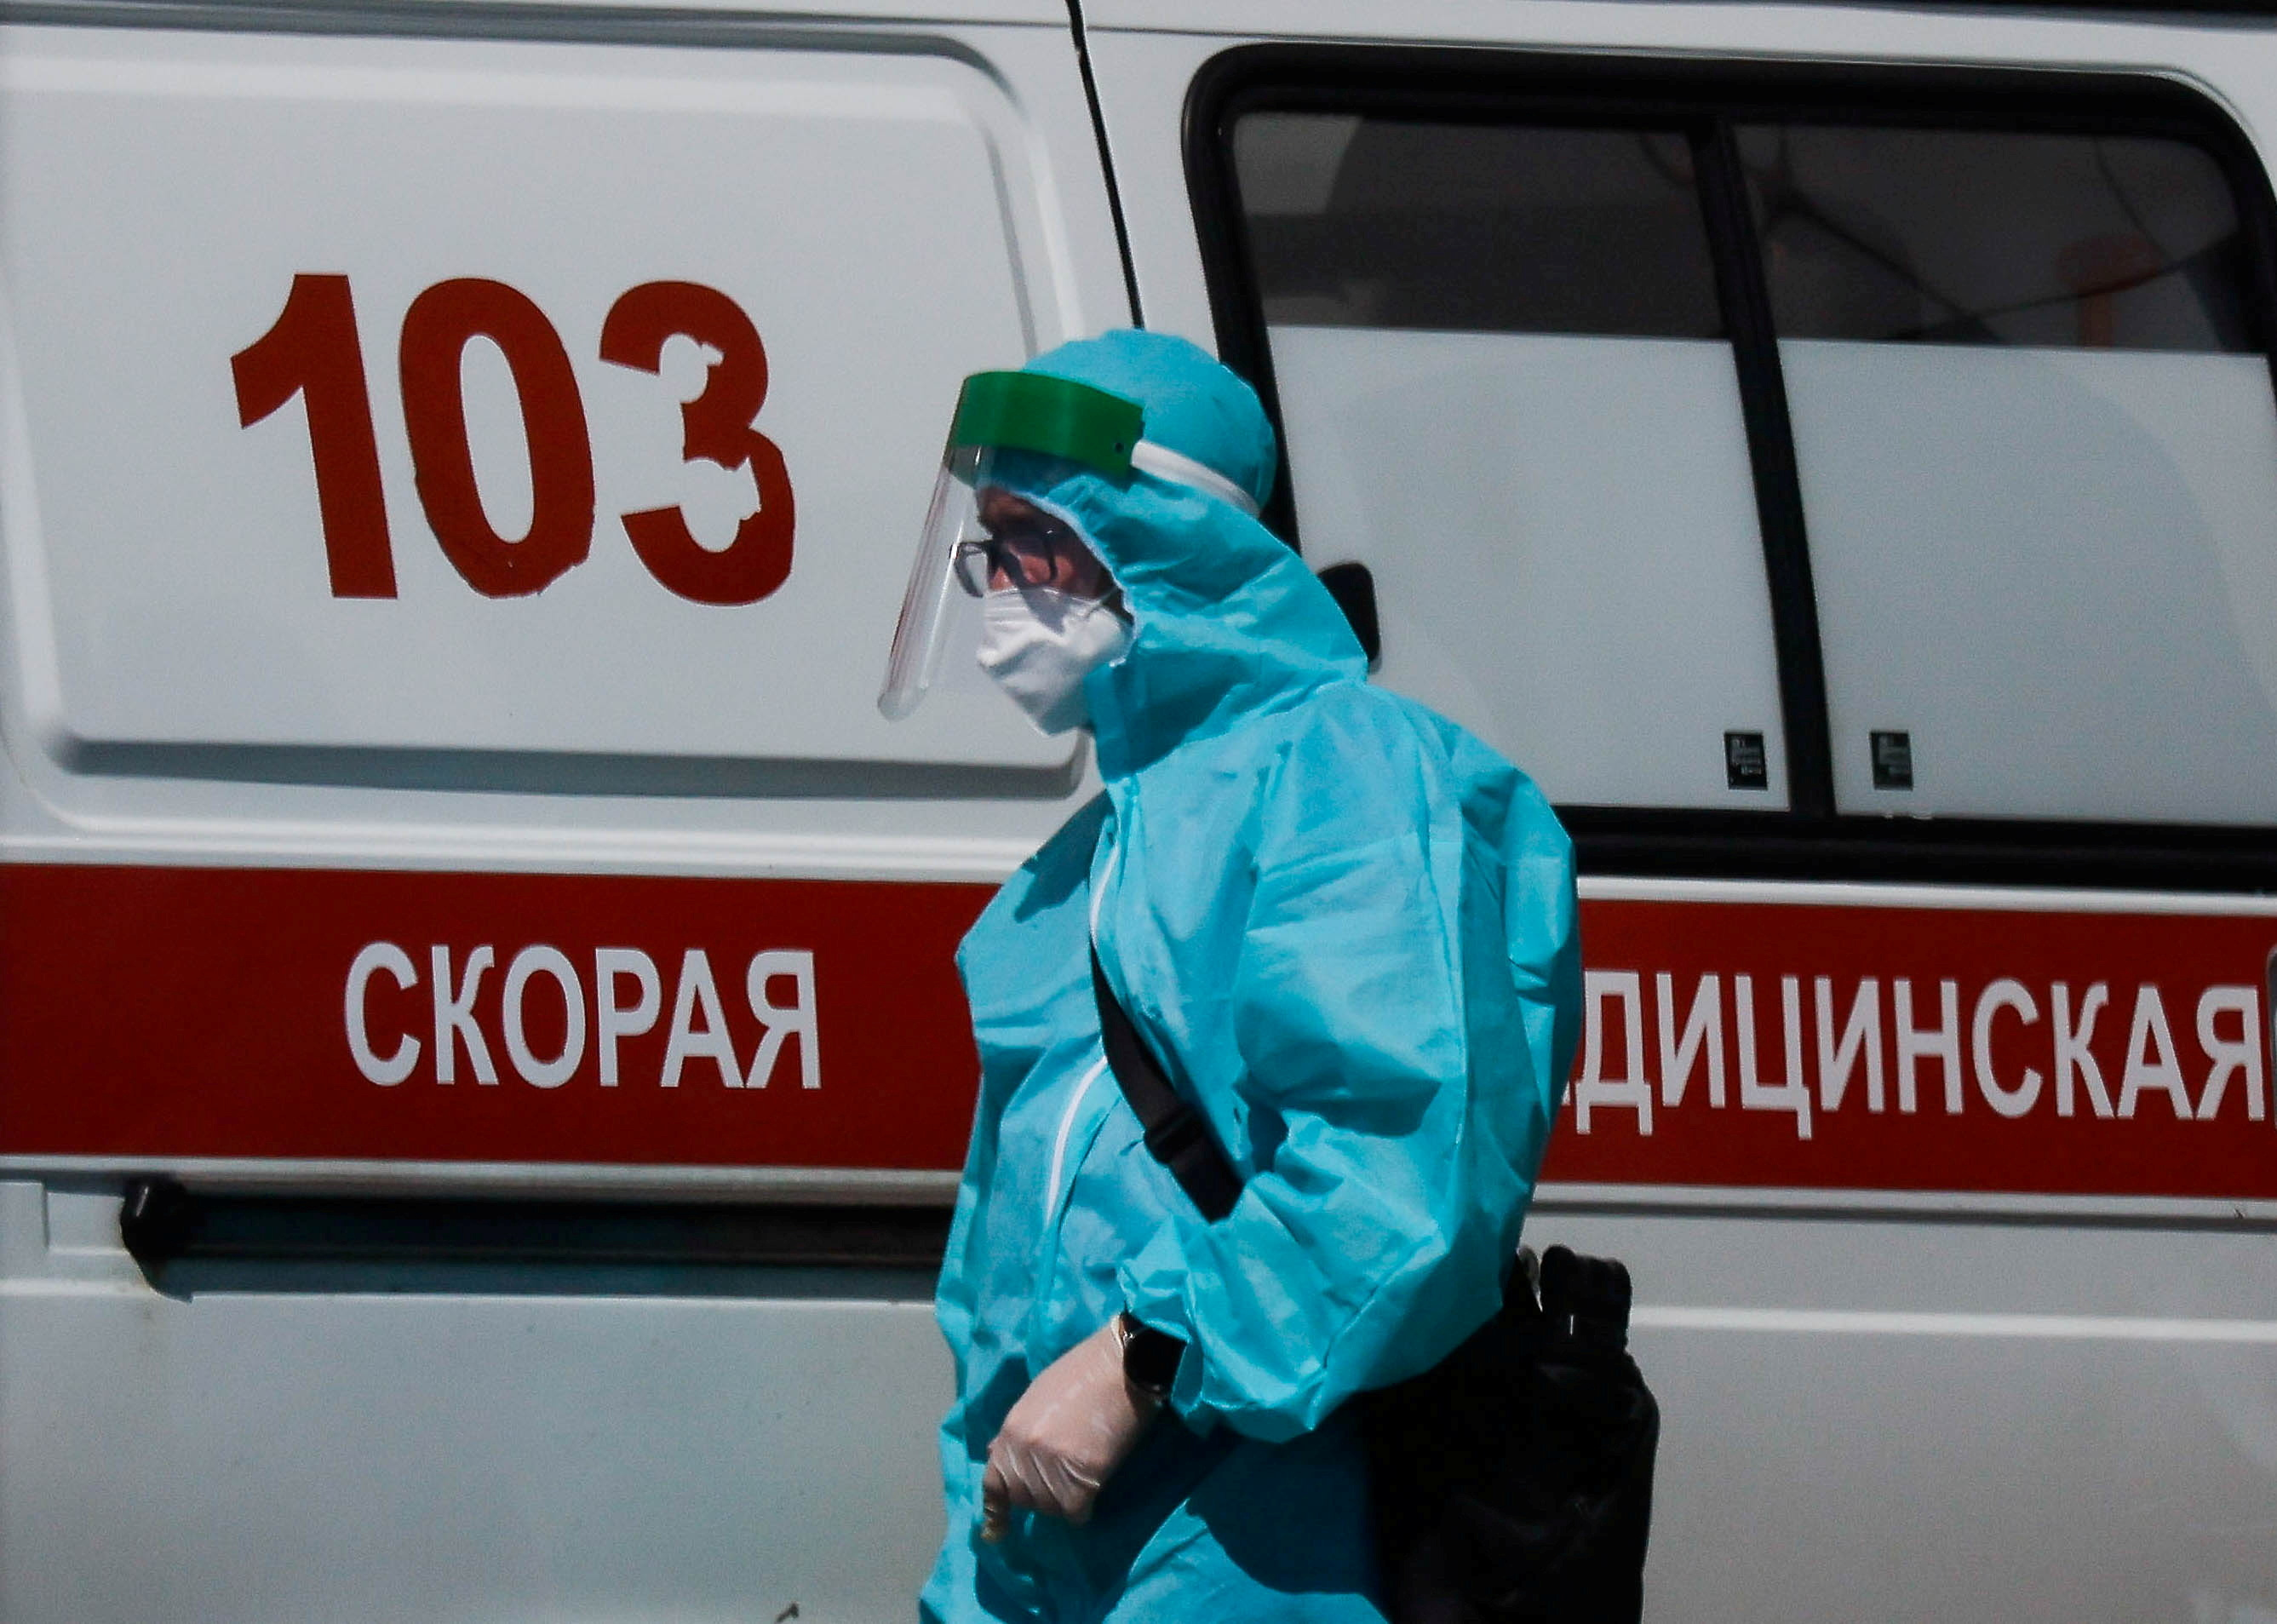 A medical specialist walks by an ambulance outside a hospital for patients infected with the coronavirus disease (COVID-19) in Moscow, Russia June 16, 2021. REUTERS/Maxim Shemetov/File Photo